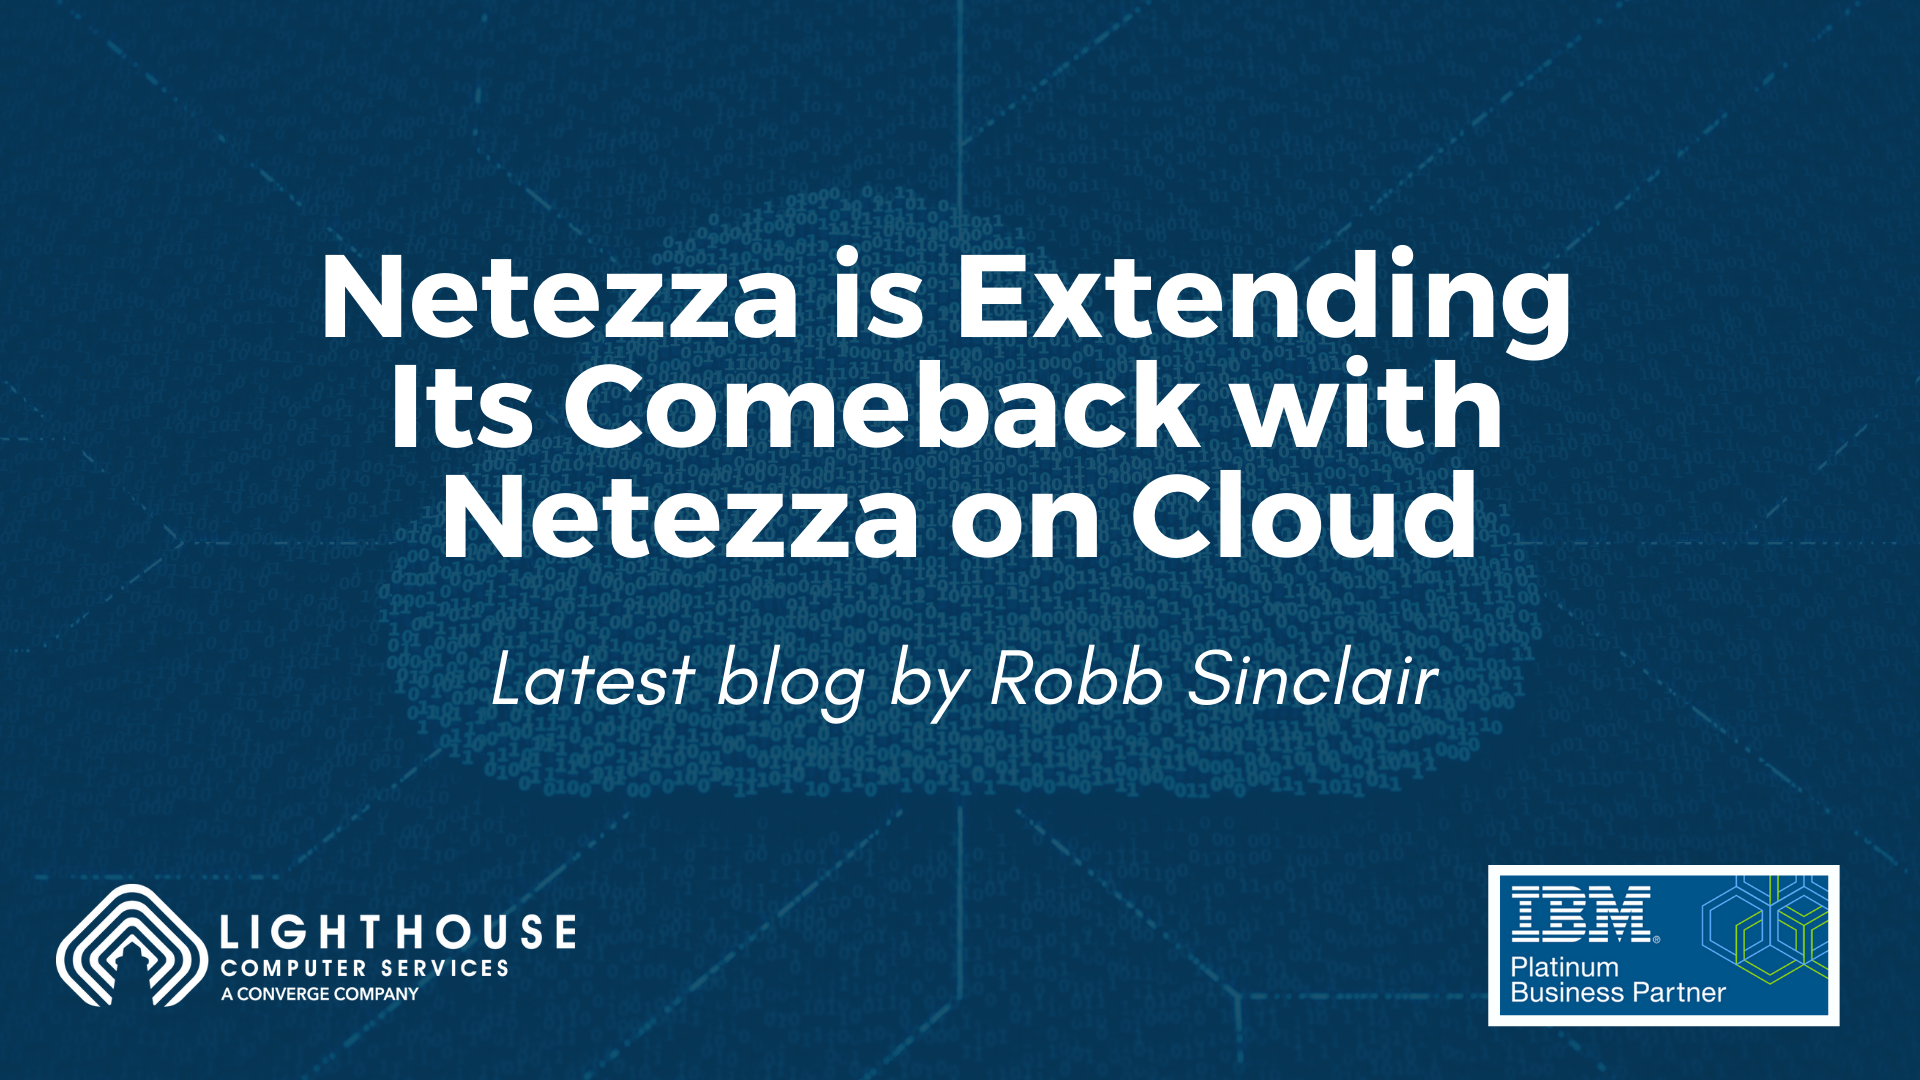 Netezza is Extending Its Comeback with Netezza on Cloud